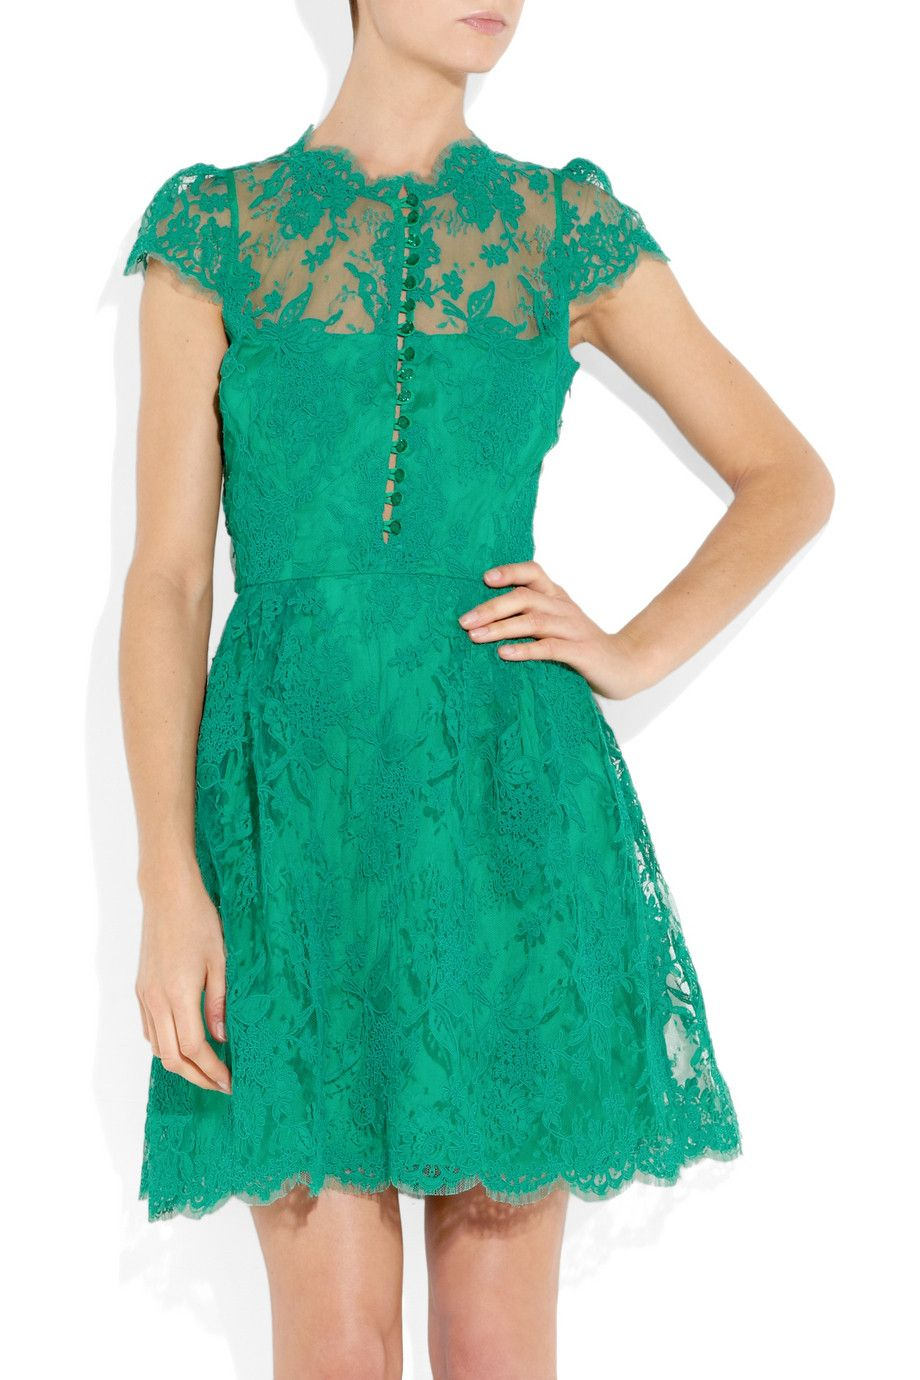 Must have! A perfect dress for a holiday party | Style. | Pinterest ...